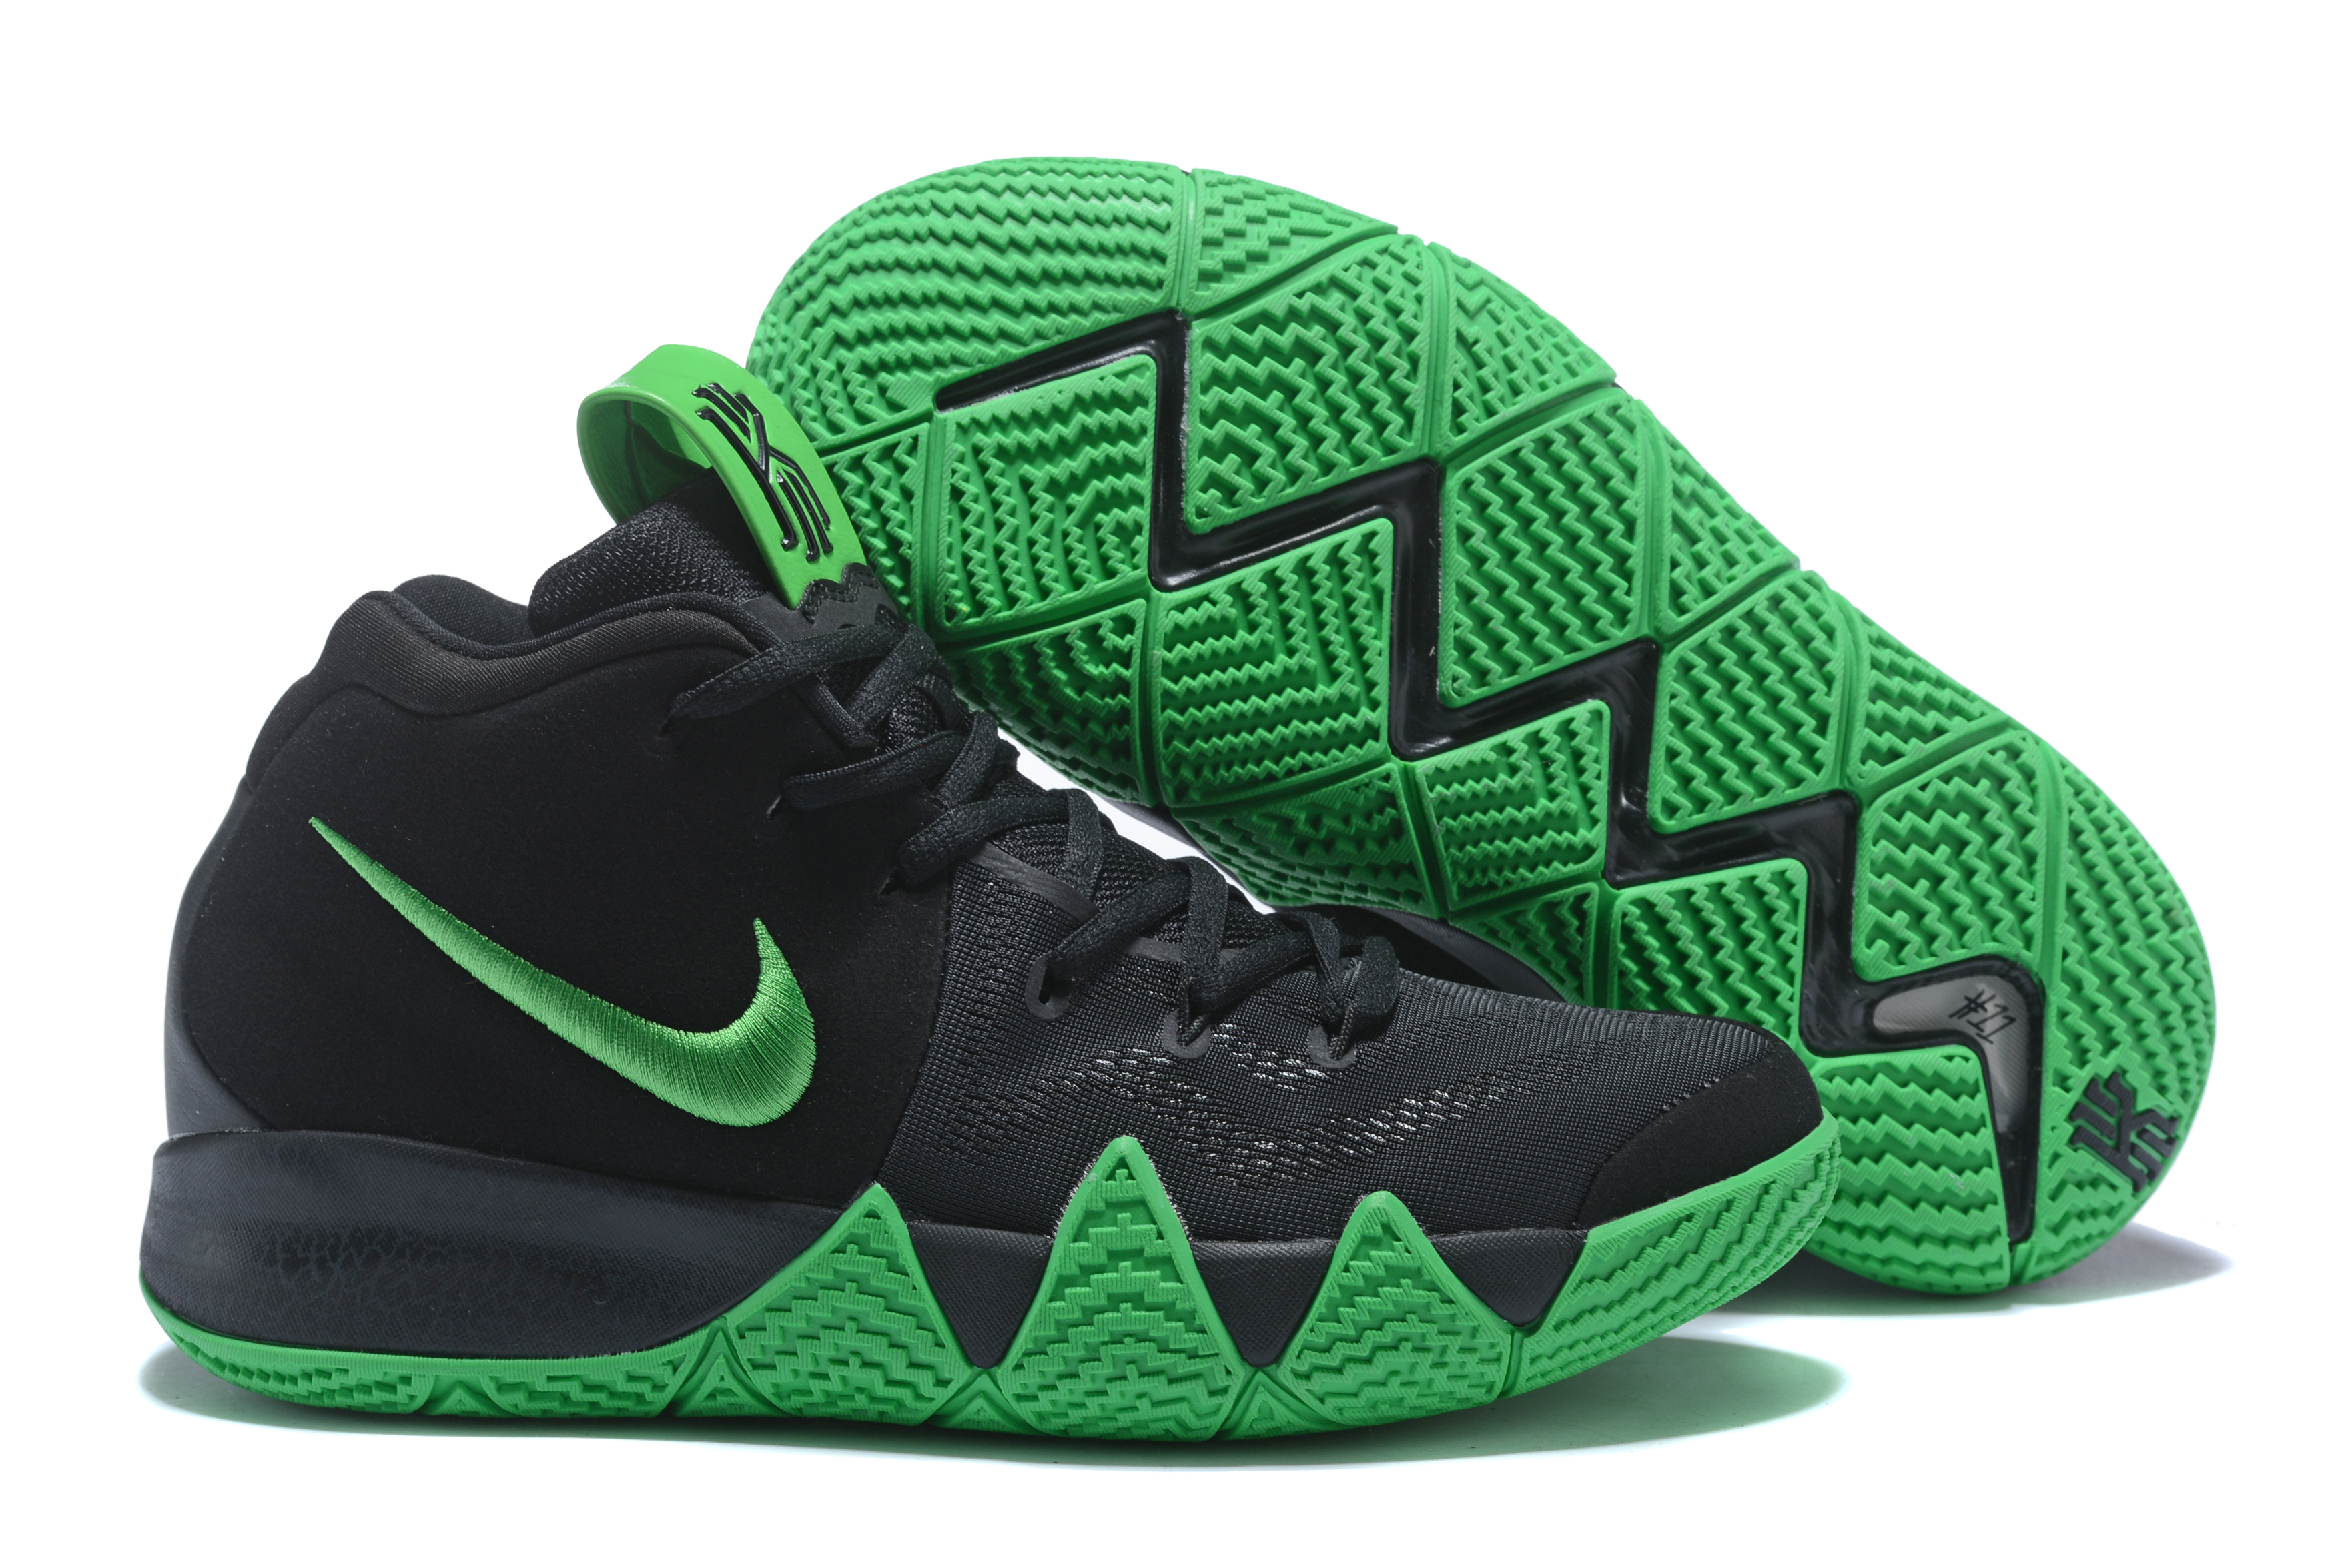 New Nike Kyrie 4 Black Green Shoes